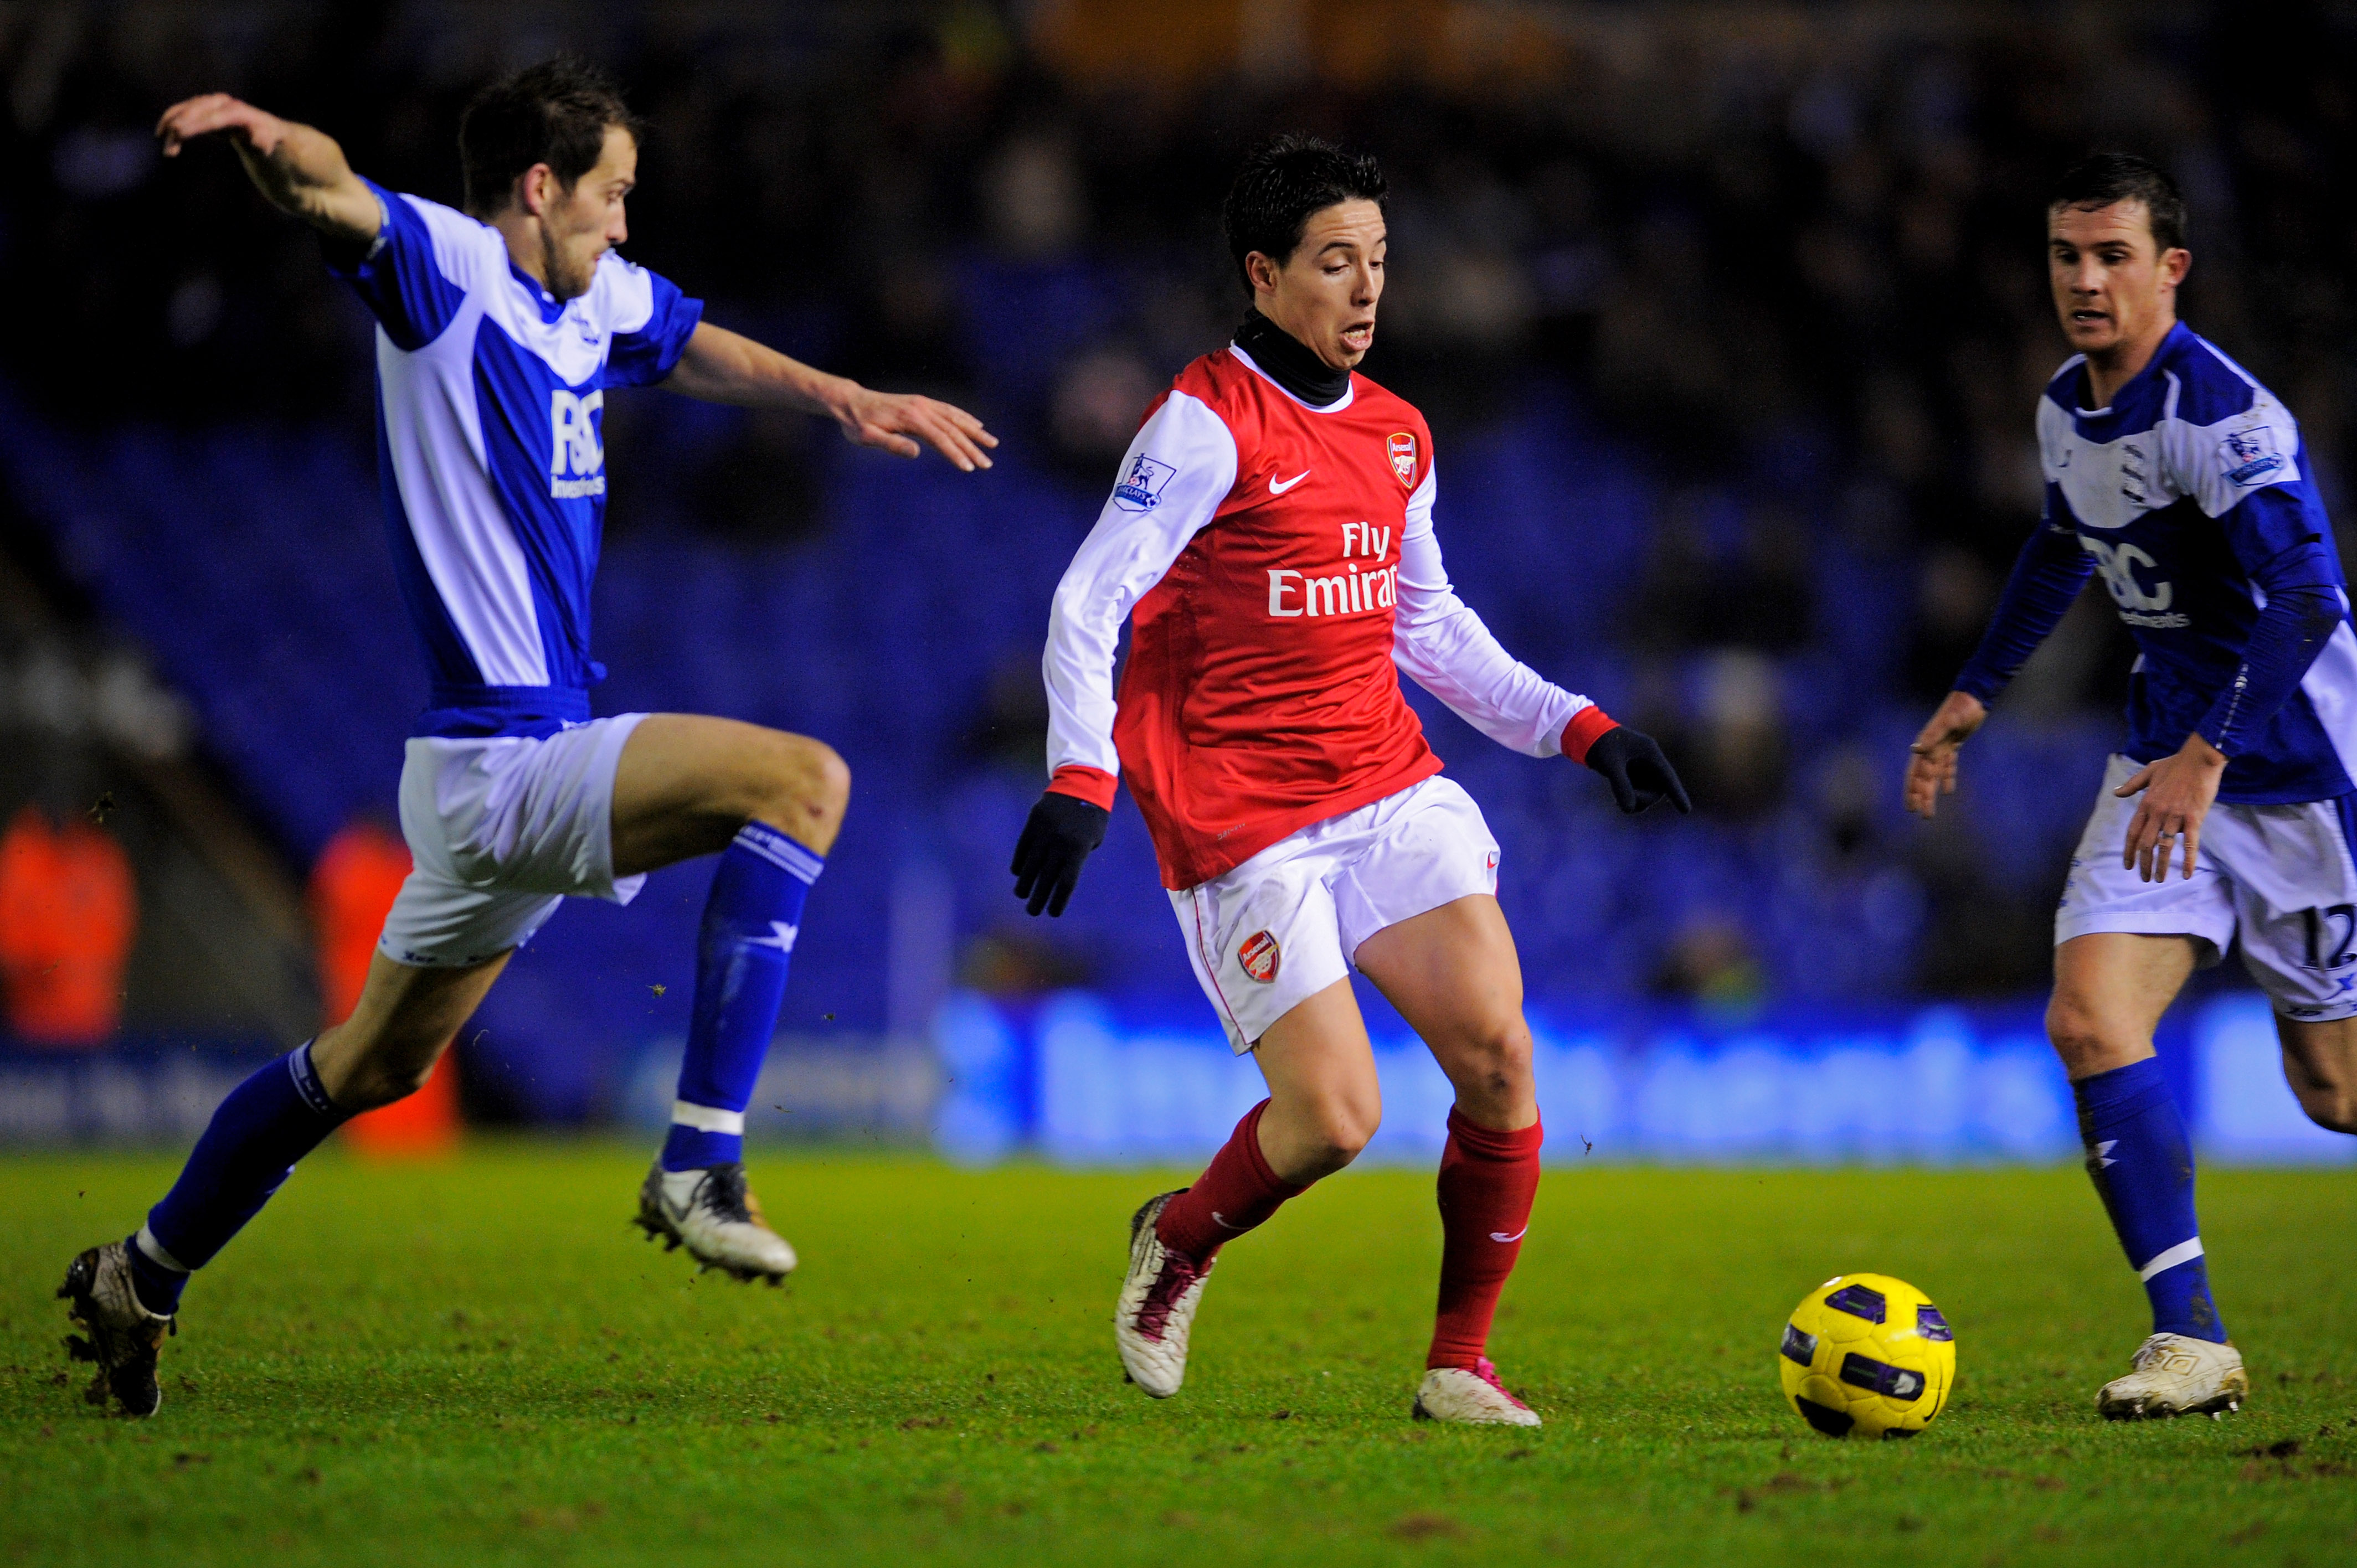 BIRMINGHAM, ENGLAND - JANUARY 01:  Samir Nasri of Arsenal is challenged by Roger Johnson of Birmingham during the Barclays Premier Leaue match between Birmingham City and Arsenal at St. Andrews on January 1, 2011 in Birmingham, England.  (Photo by Michael